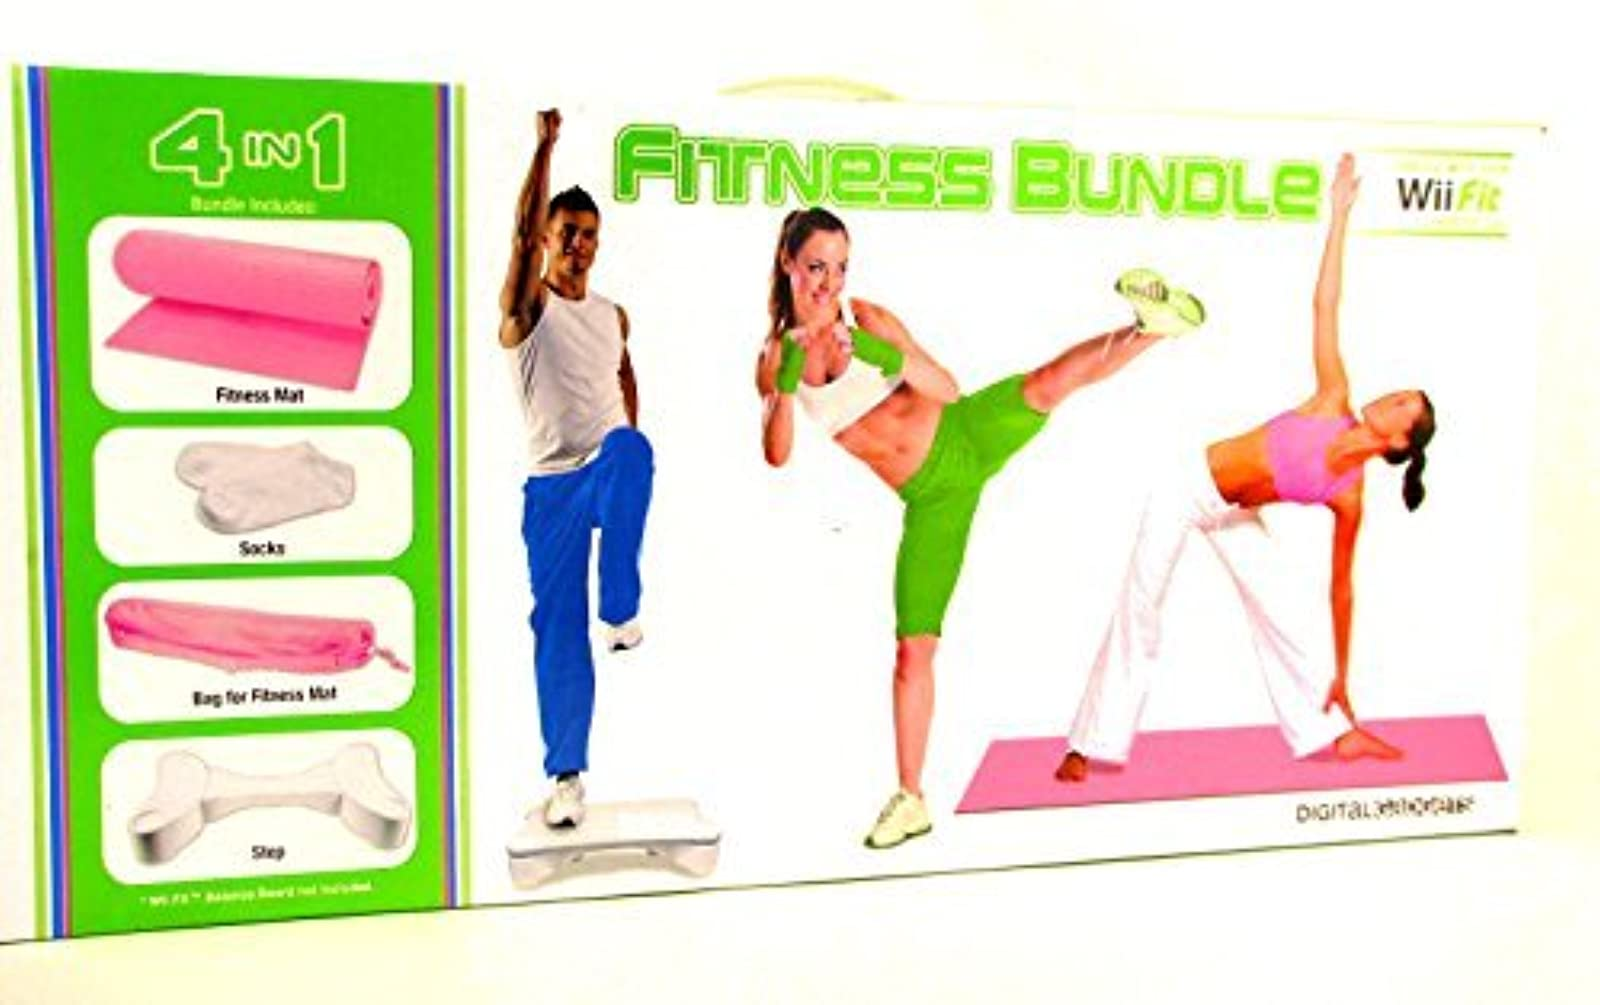 4 In 1 Wii Fit Fitness Bundle Includes Mat Step Textured Socks And Carry Bag Pin